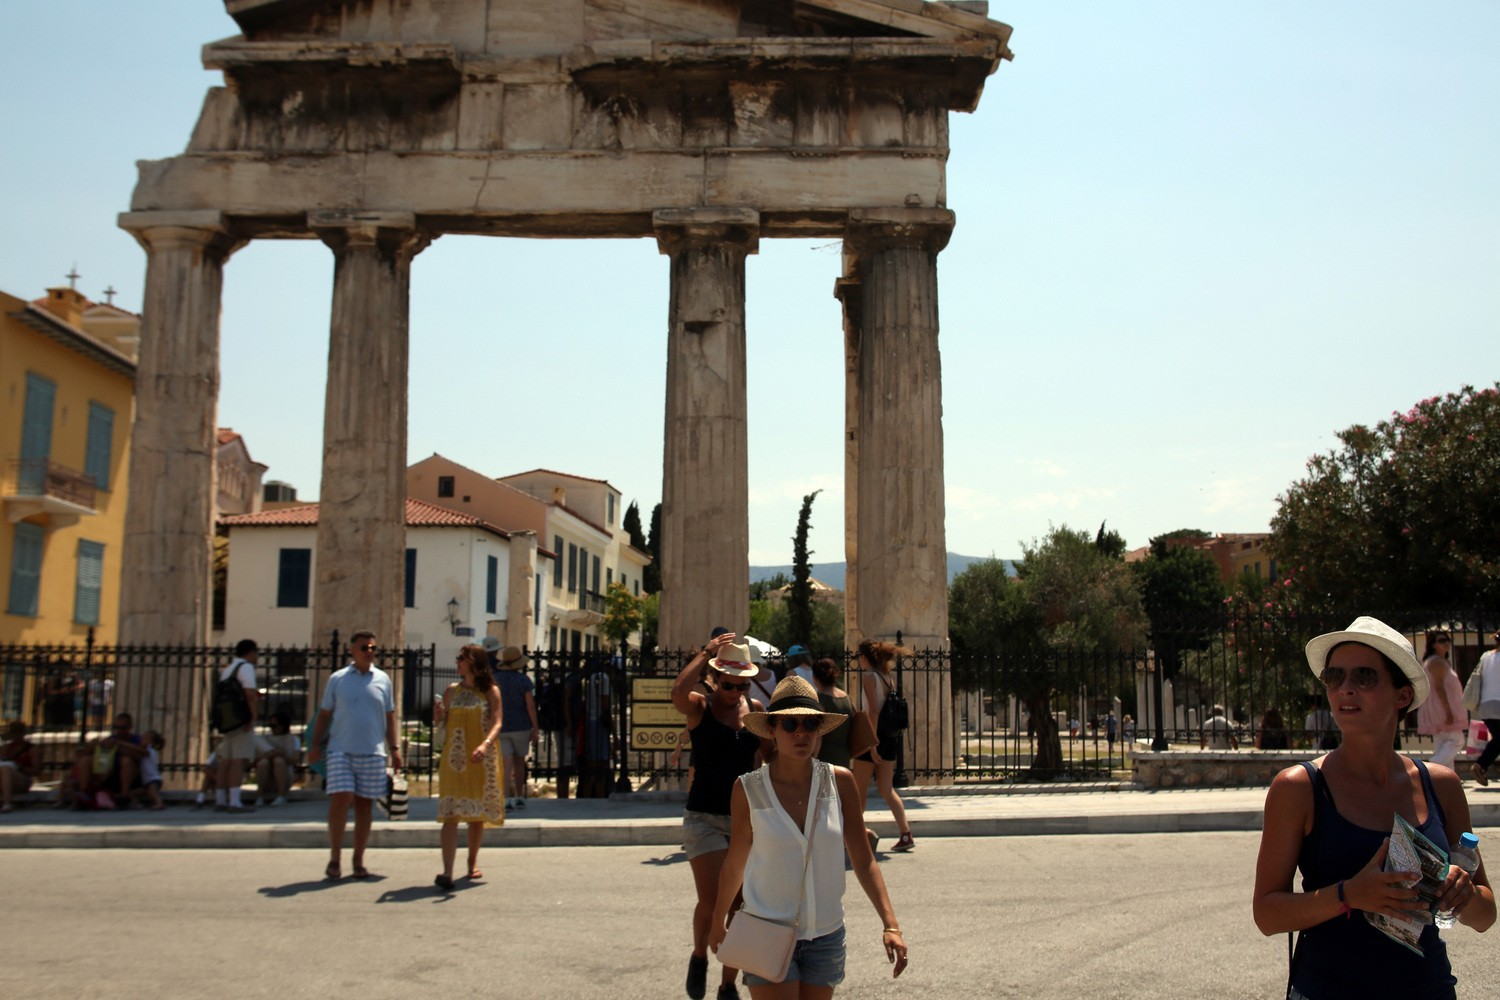 The rise of tourism in Greece continues